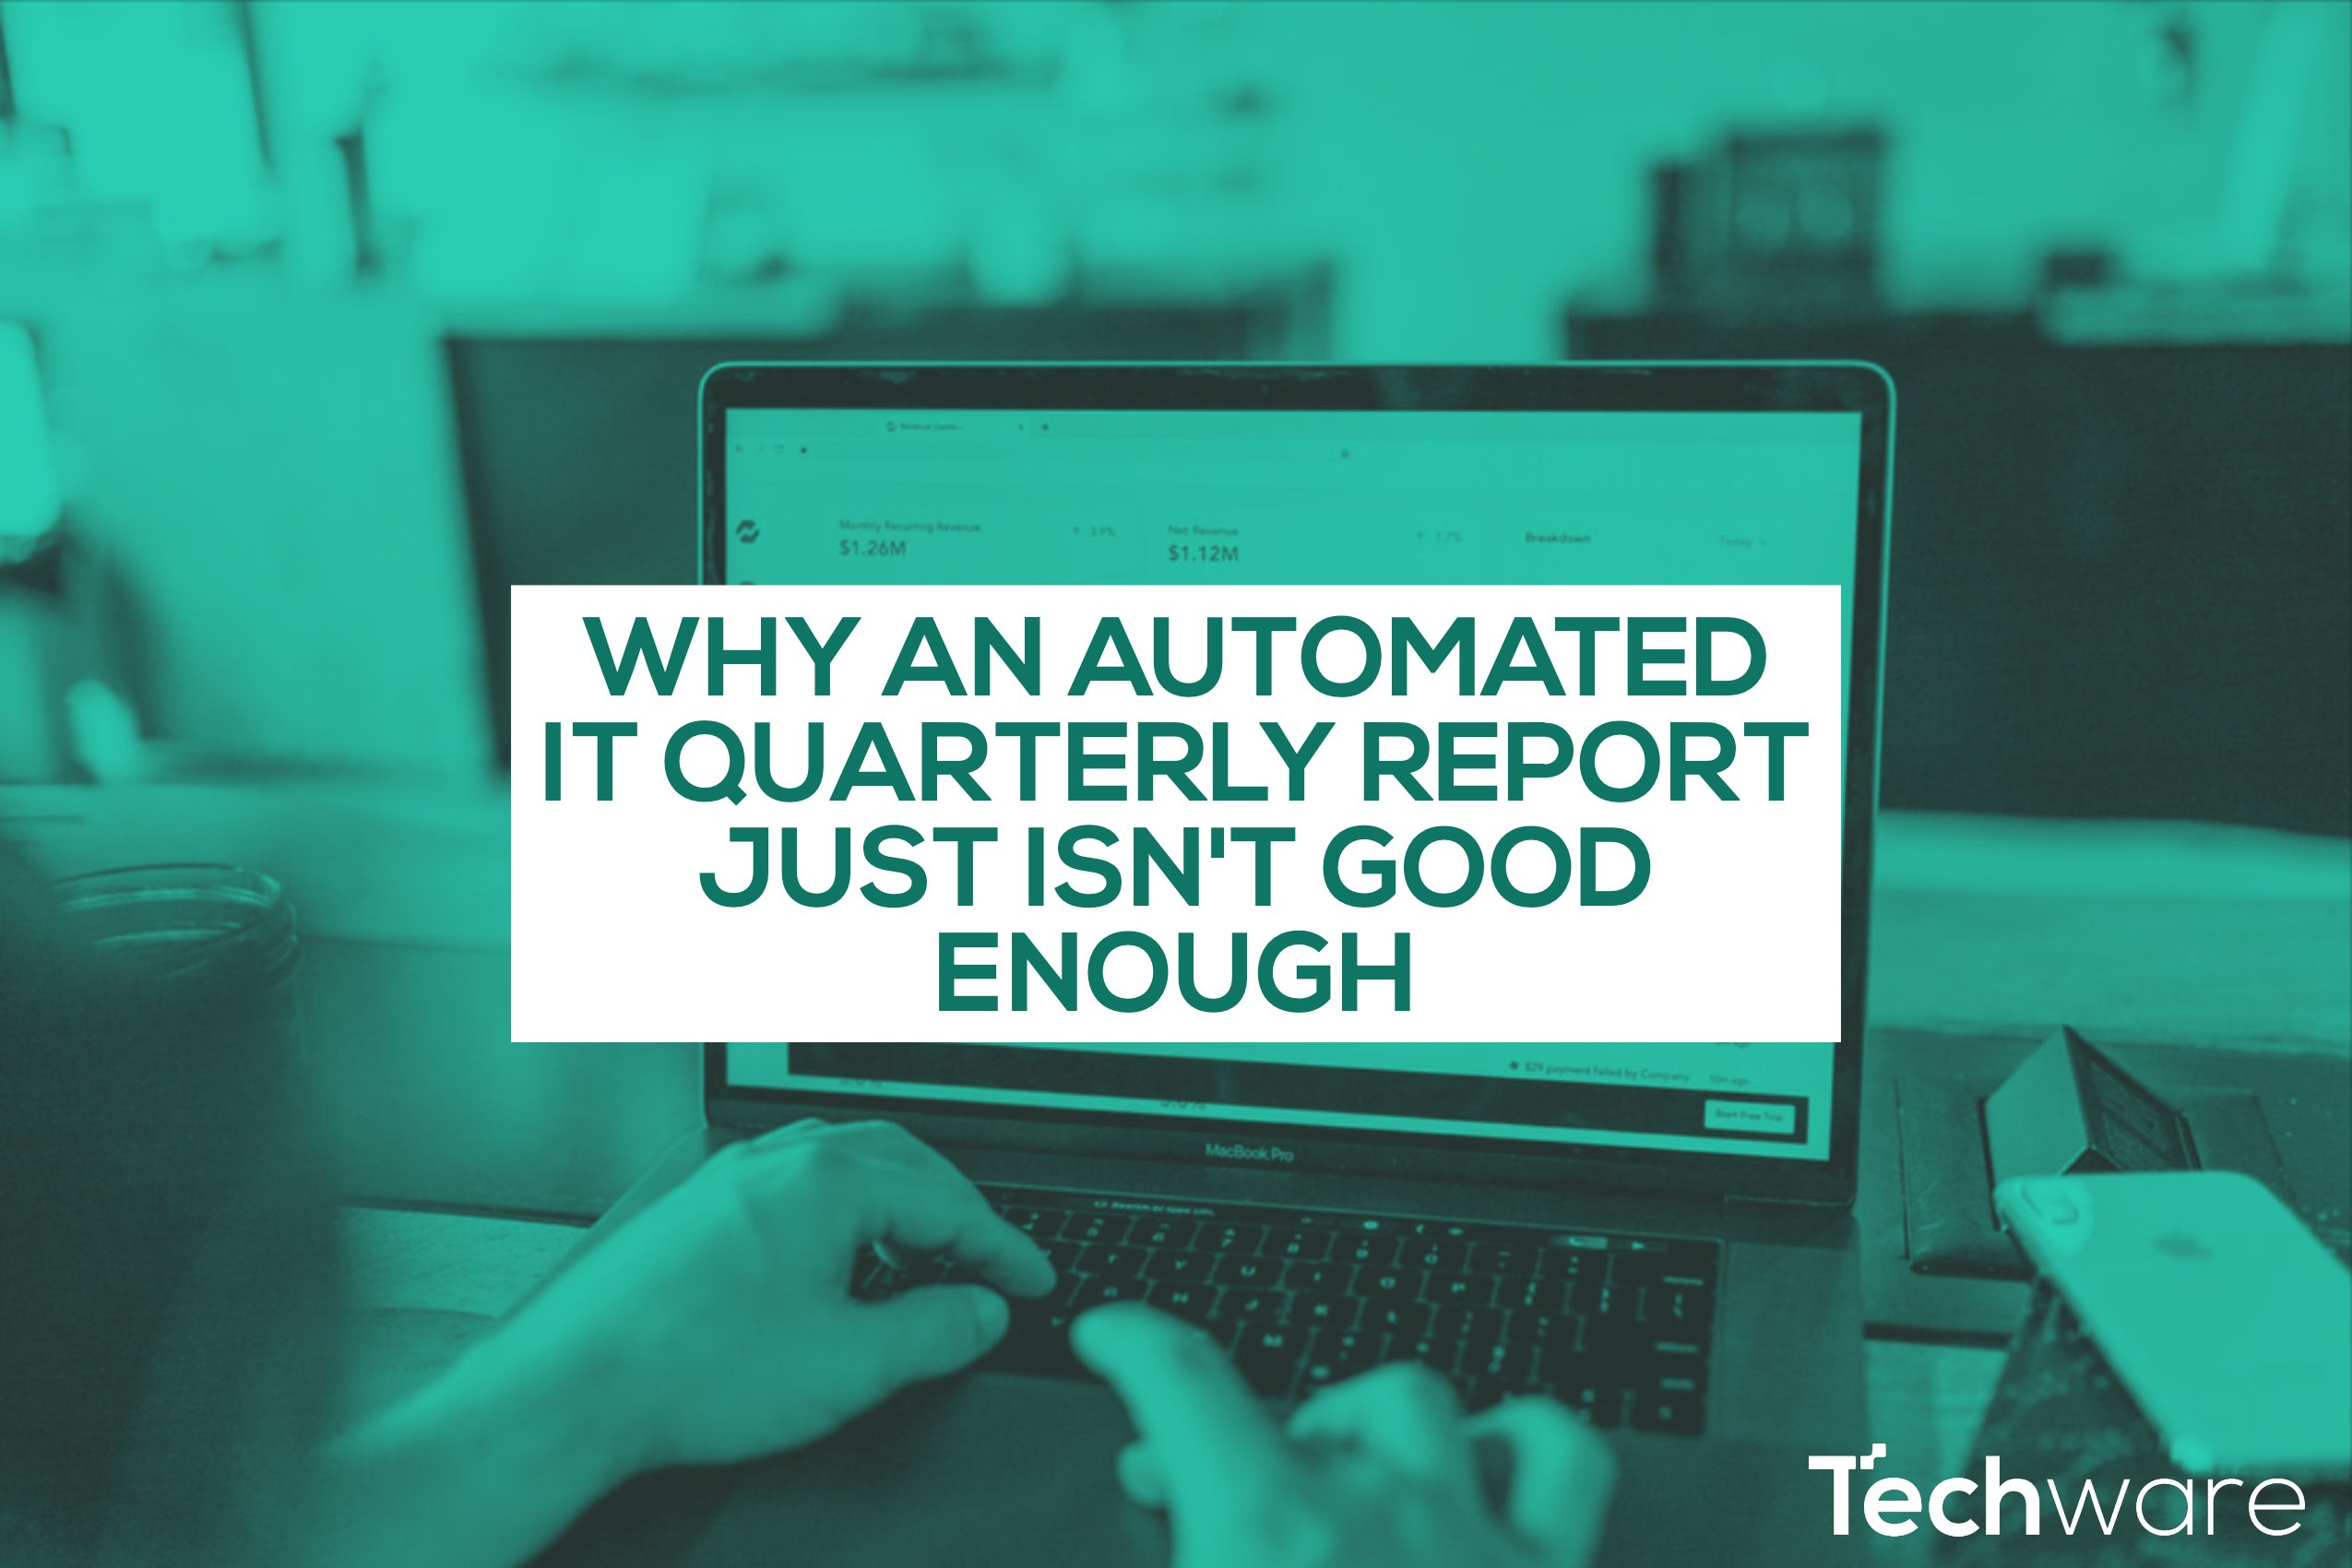 Why an automated IT Quarterly Report just isn't good enough